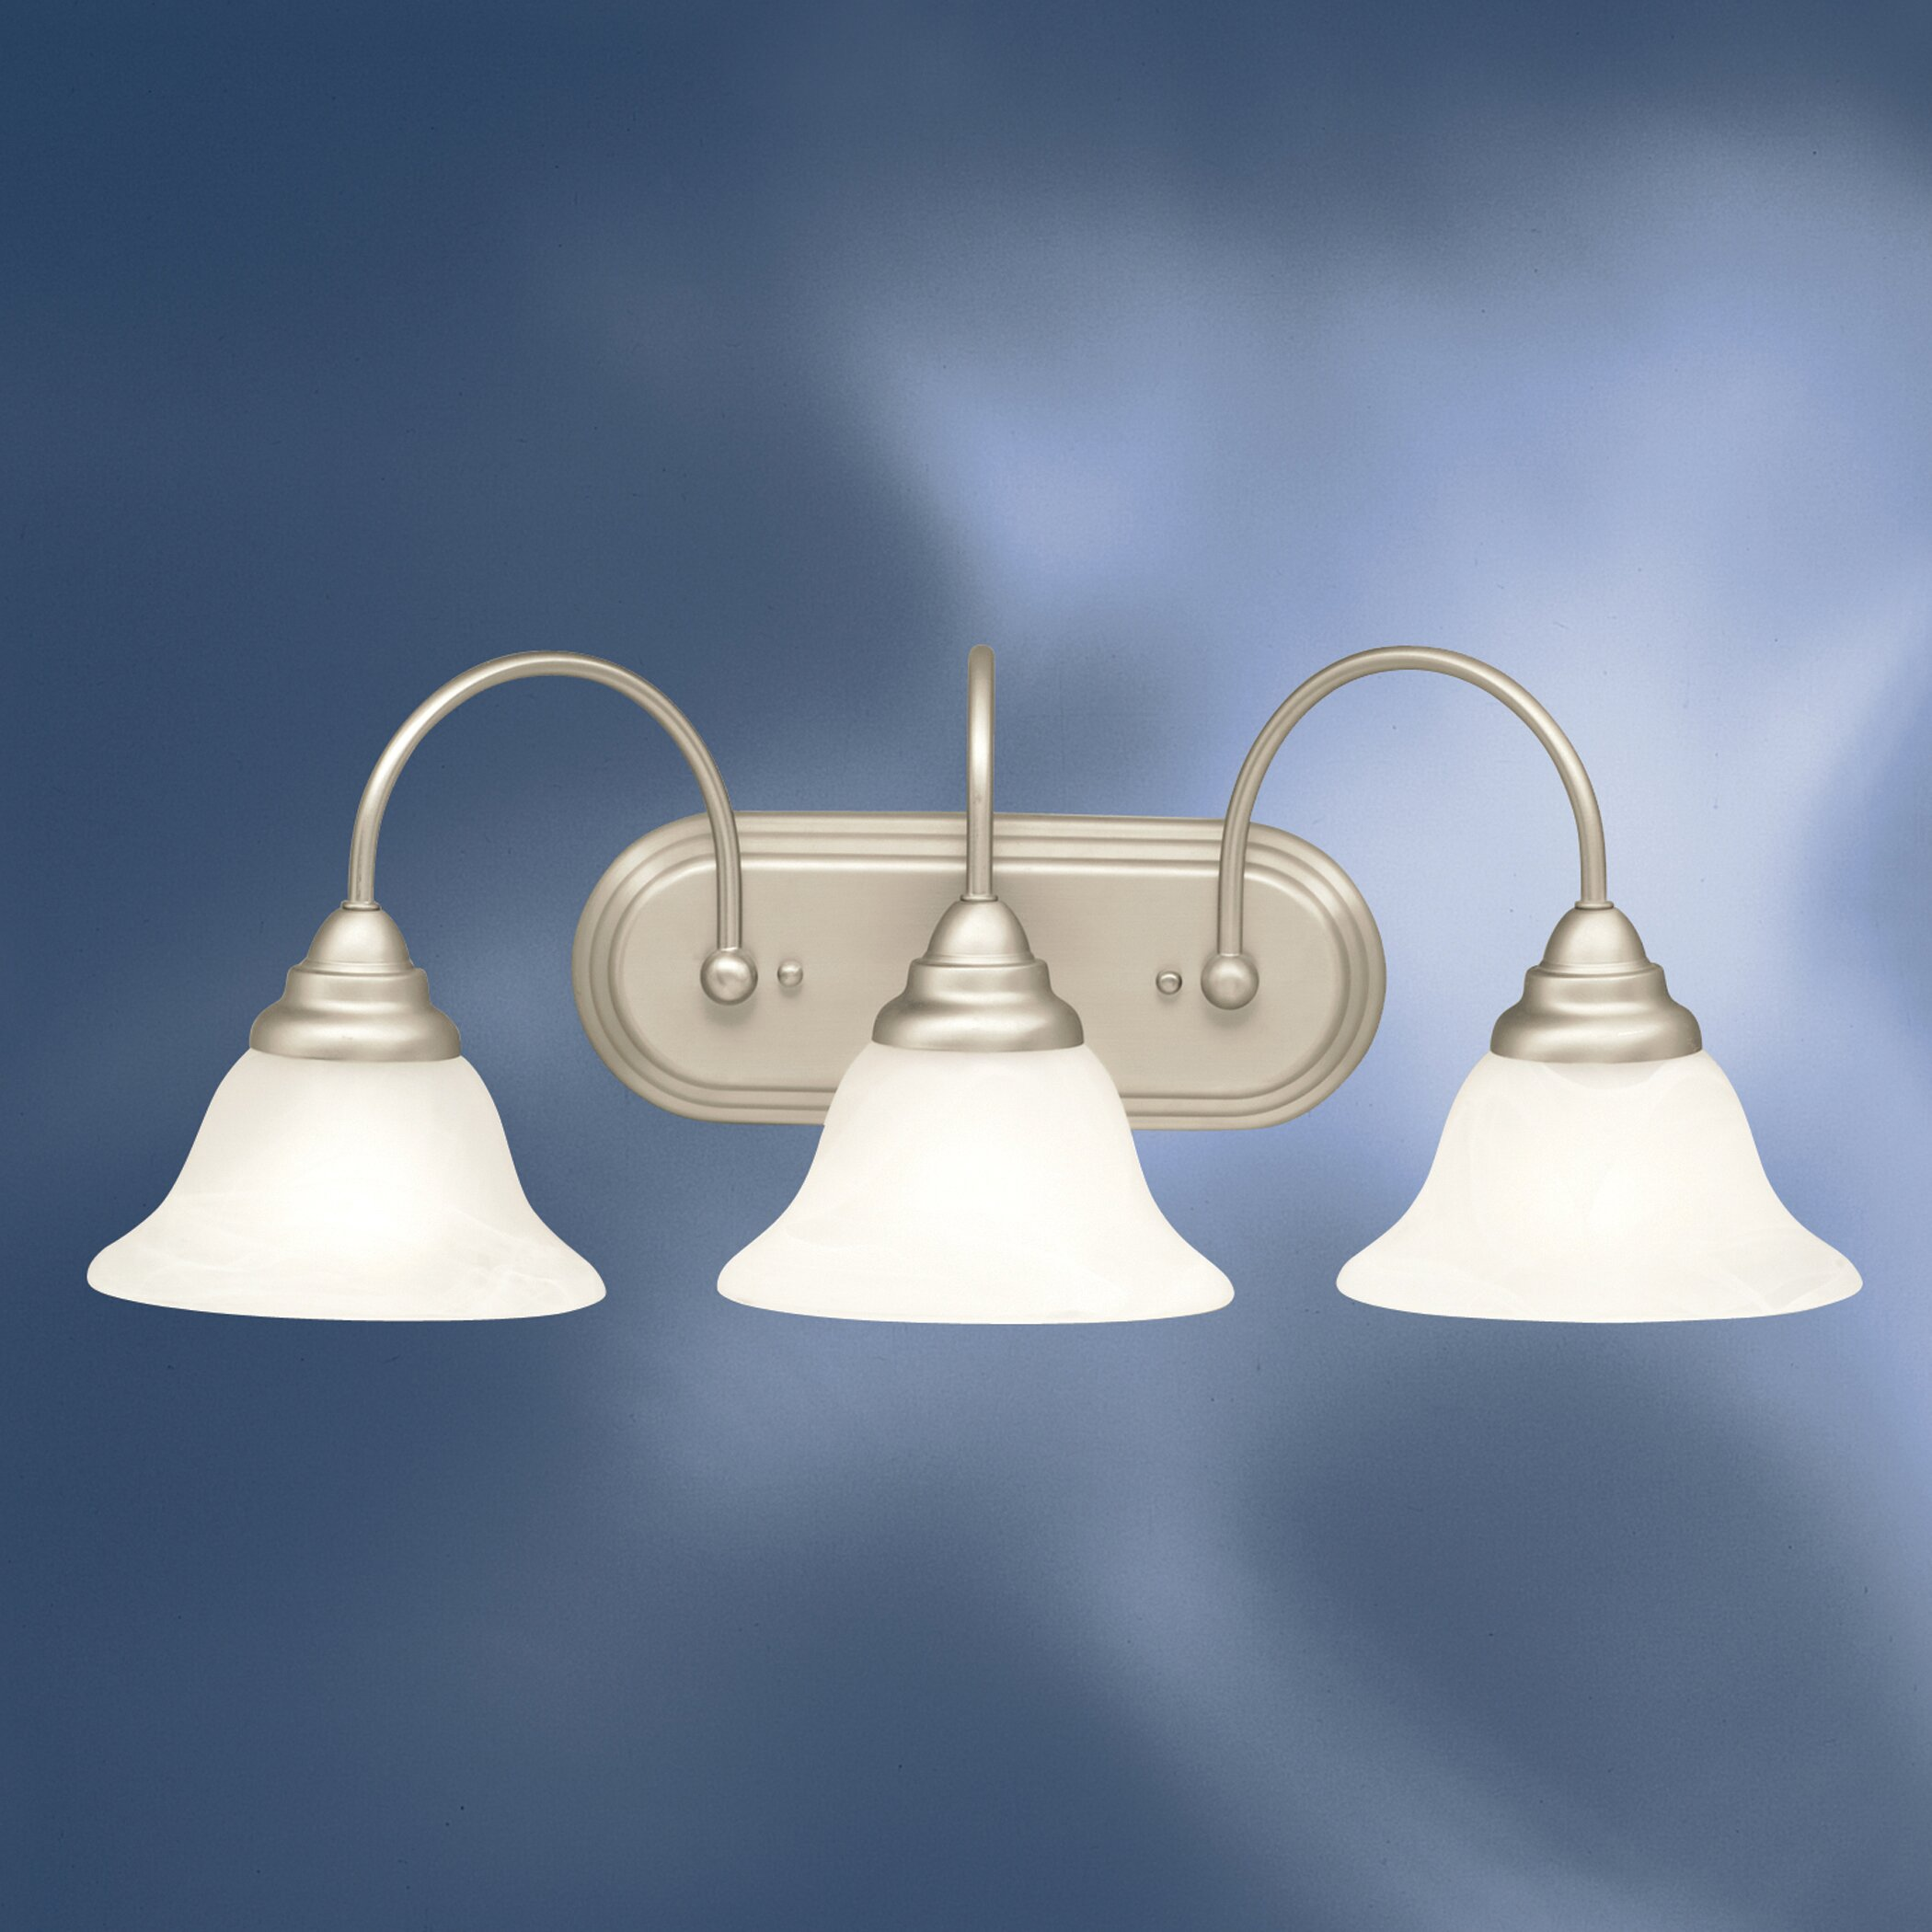 Vanity Lights Kichler : Kichler Telford 3 Light Vanity Light & Reviews Wayfair